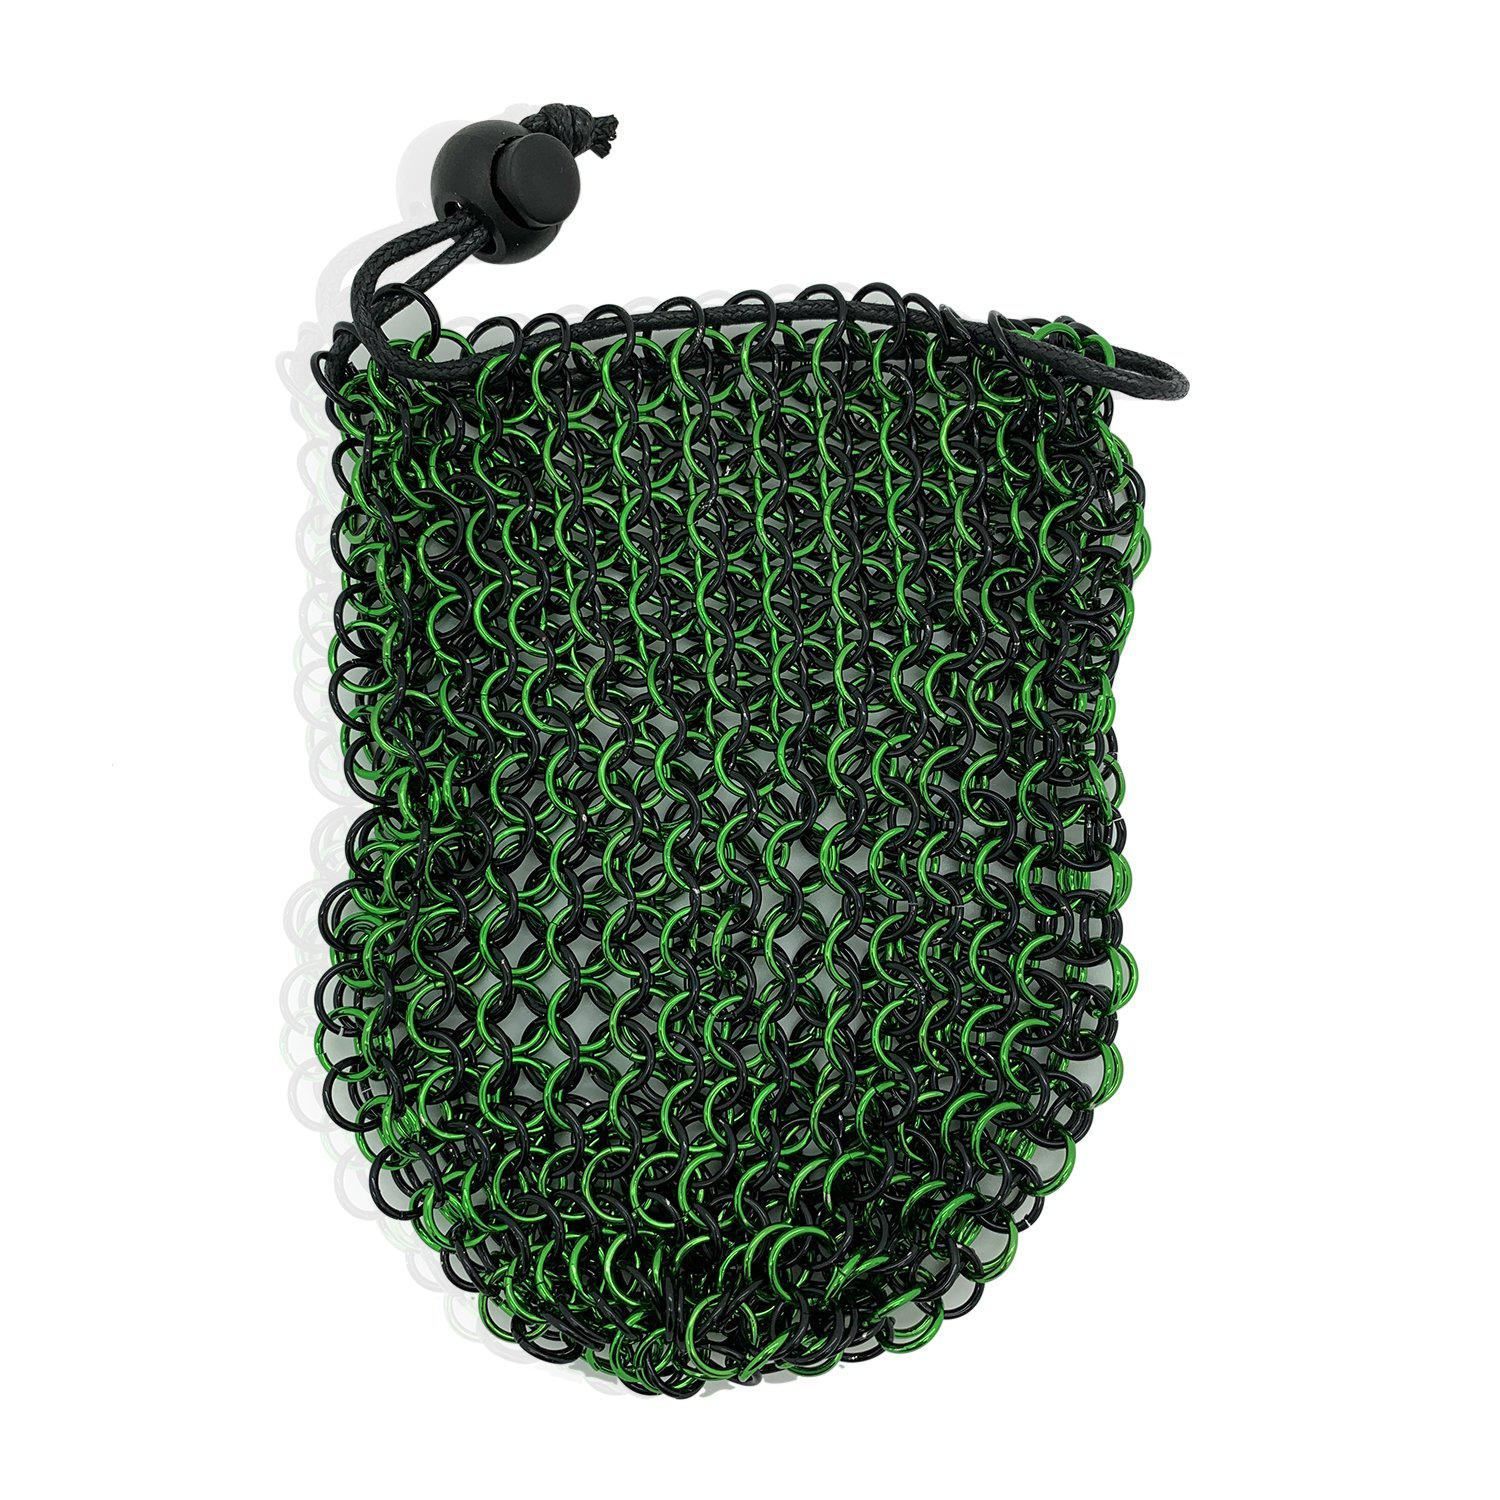 Stainless Steel Chainmail Dice Bag - Green & Black by Norse Foundry